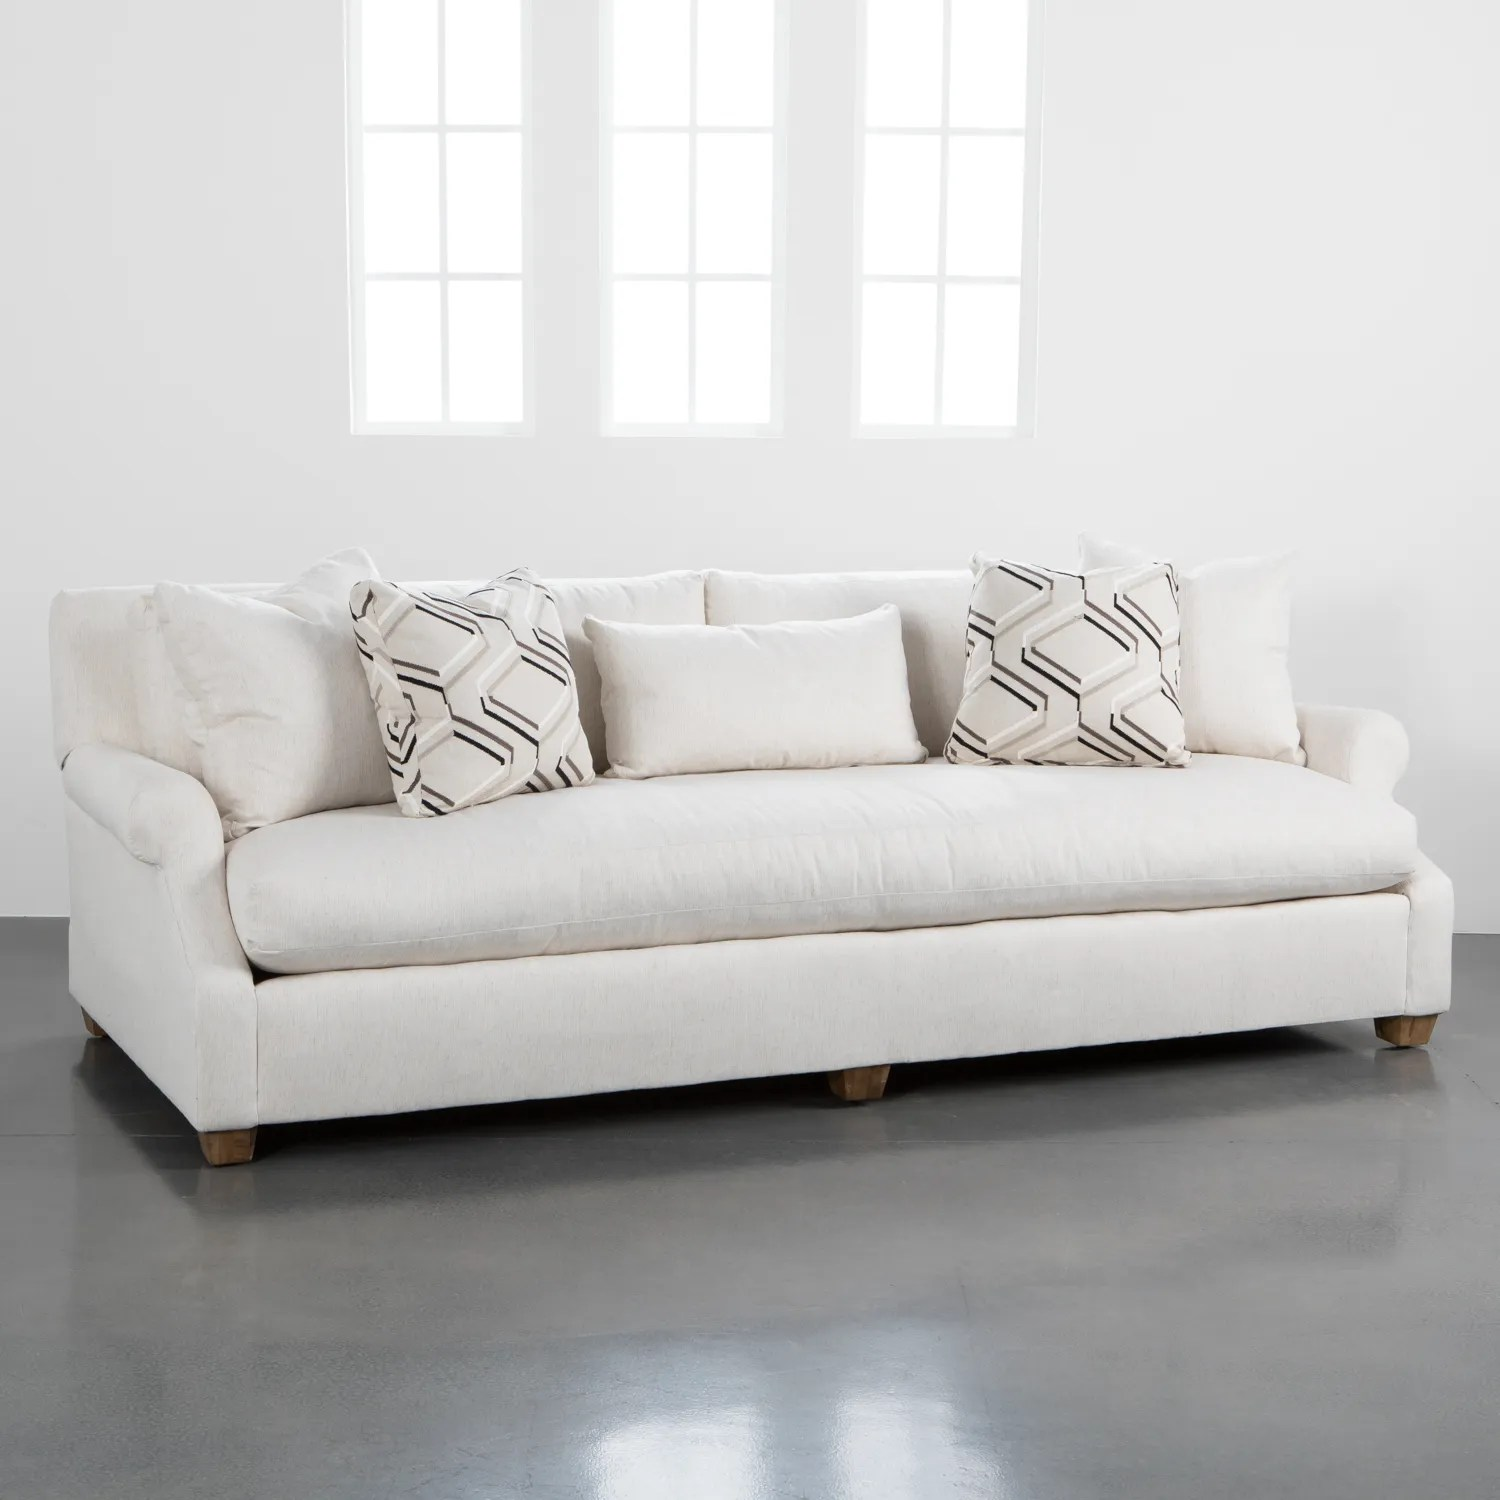 Sofa Set Sale In Jamshedpur Isabella Xl Sofa Furniture Living Room Sofas Sale